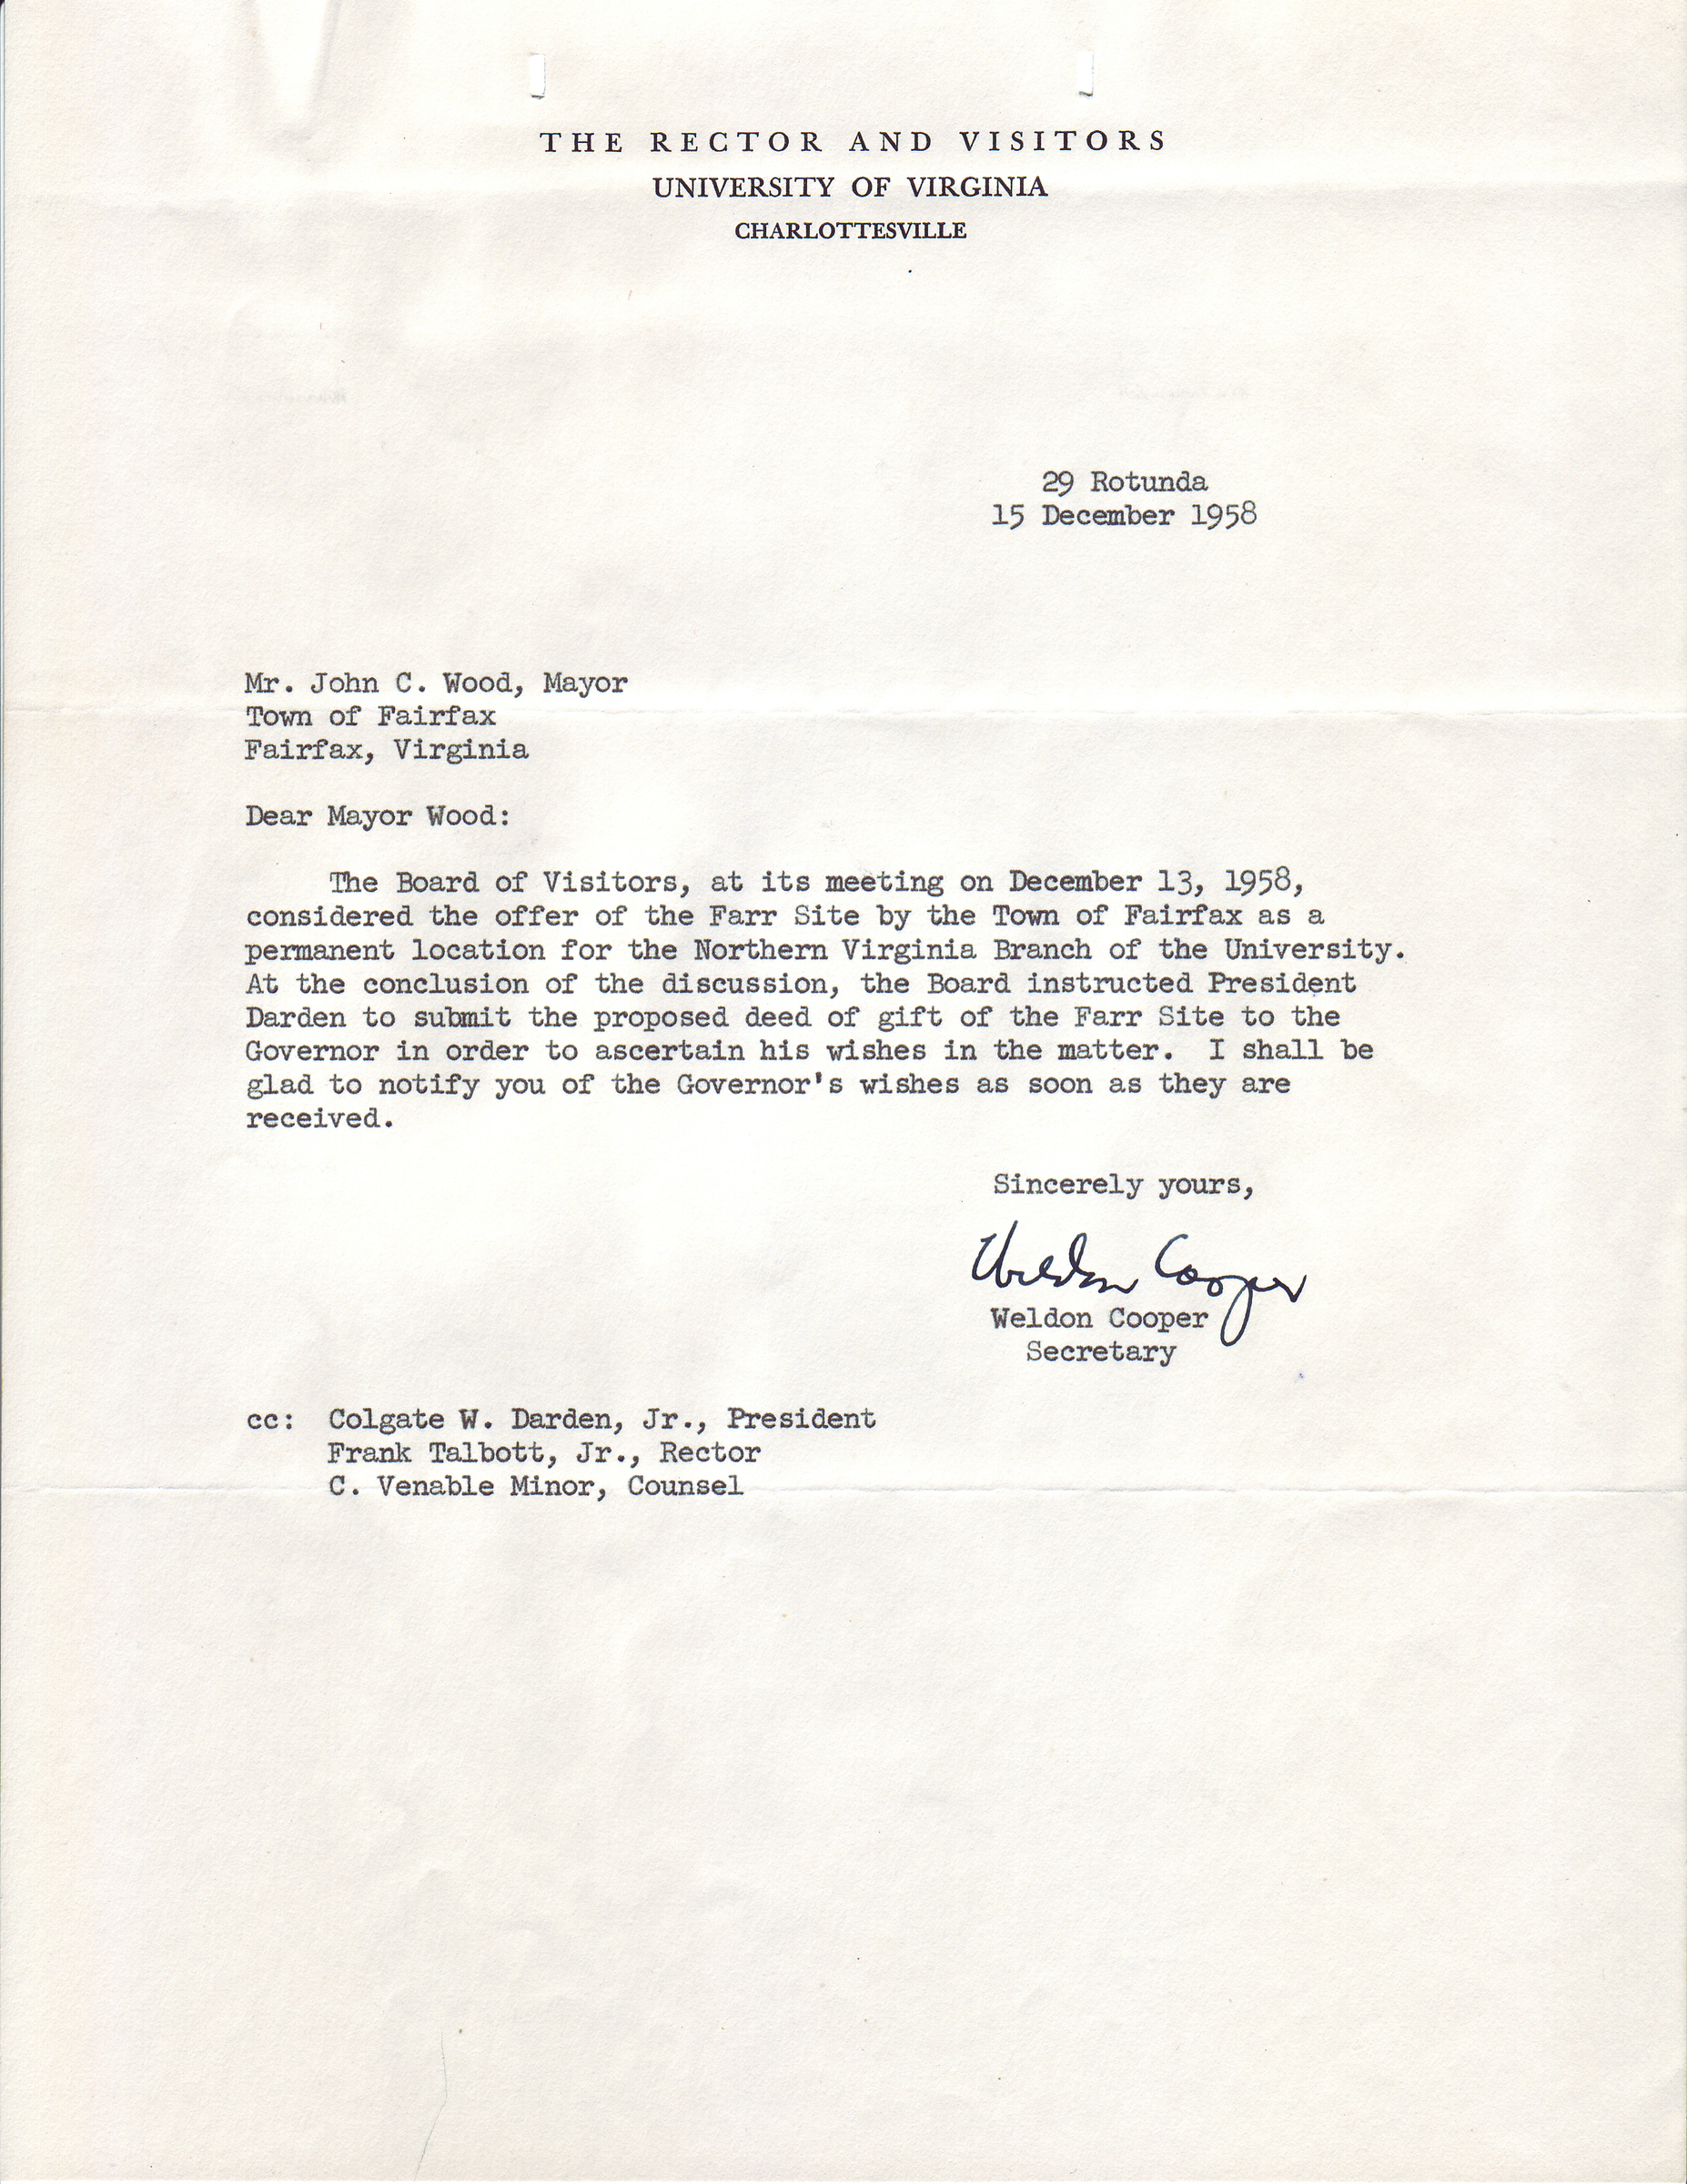 Weldon Cooper to John C. Wood, December 15, 1958.